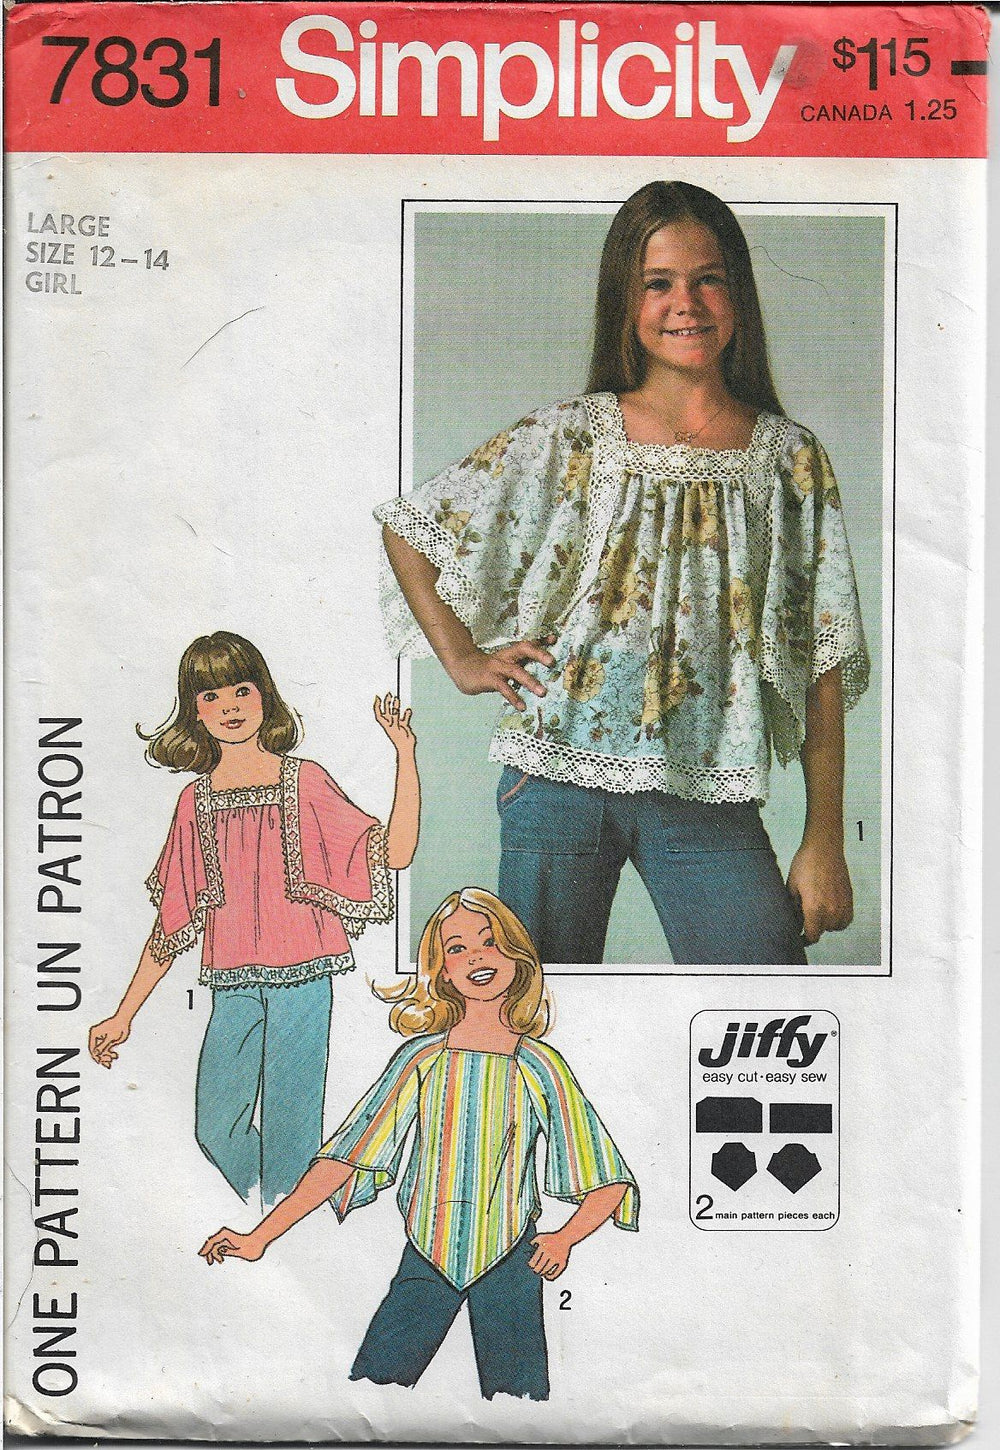 Simplicity 7831 Girls Pullover Top Jiffy Vintage Sewing Pattern 1970s - VintageStitching - Vintage Sewing Patterns